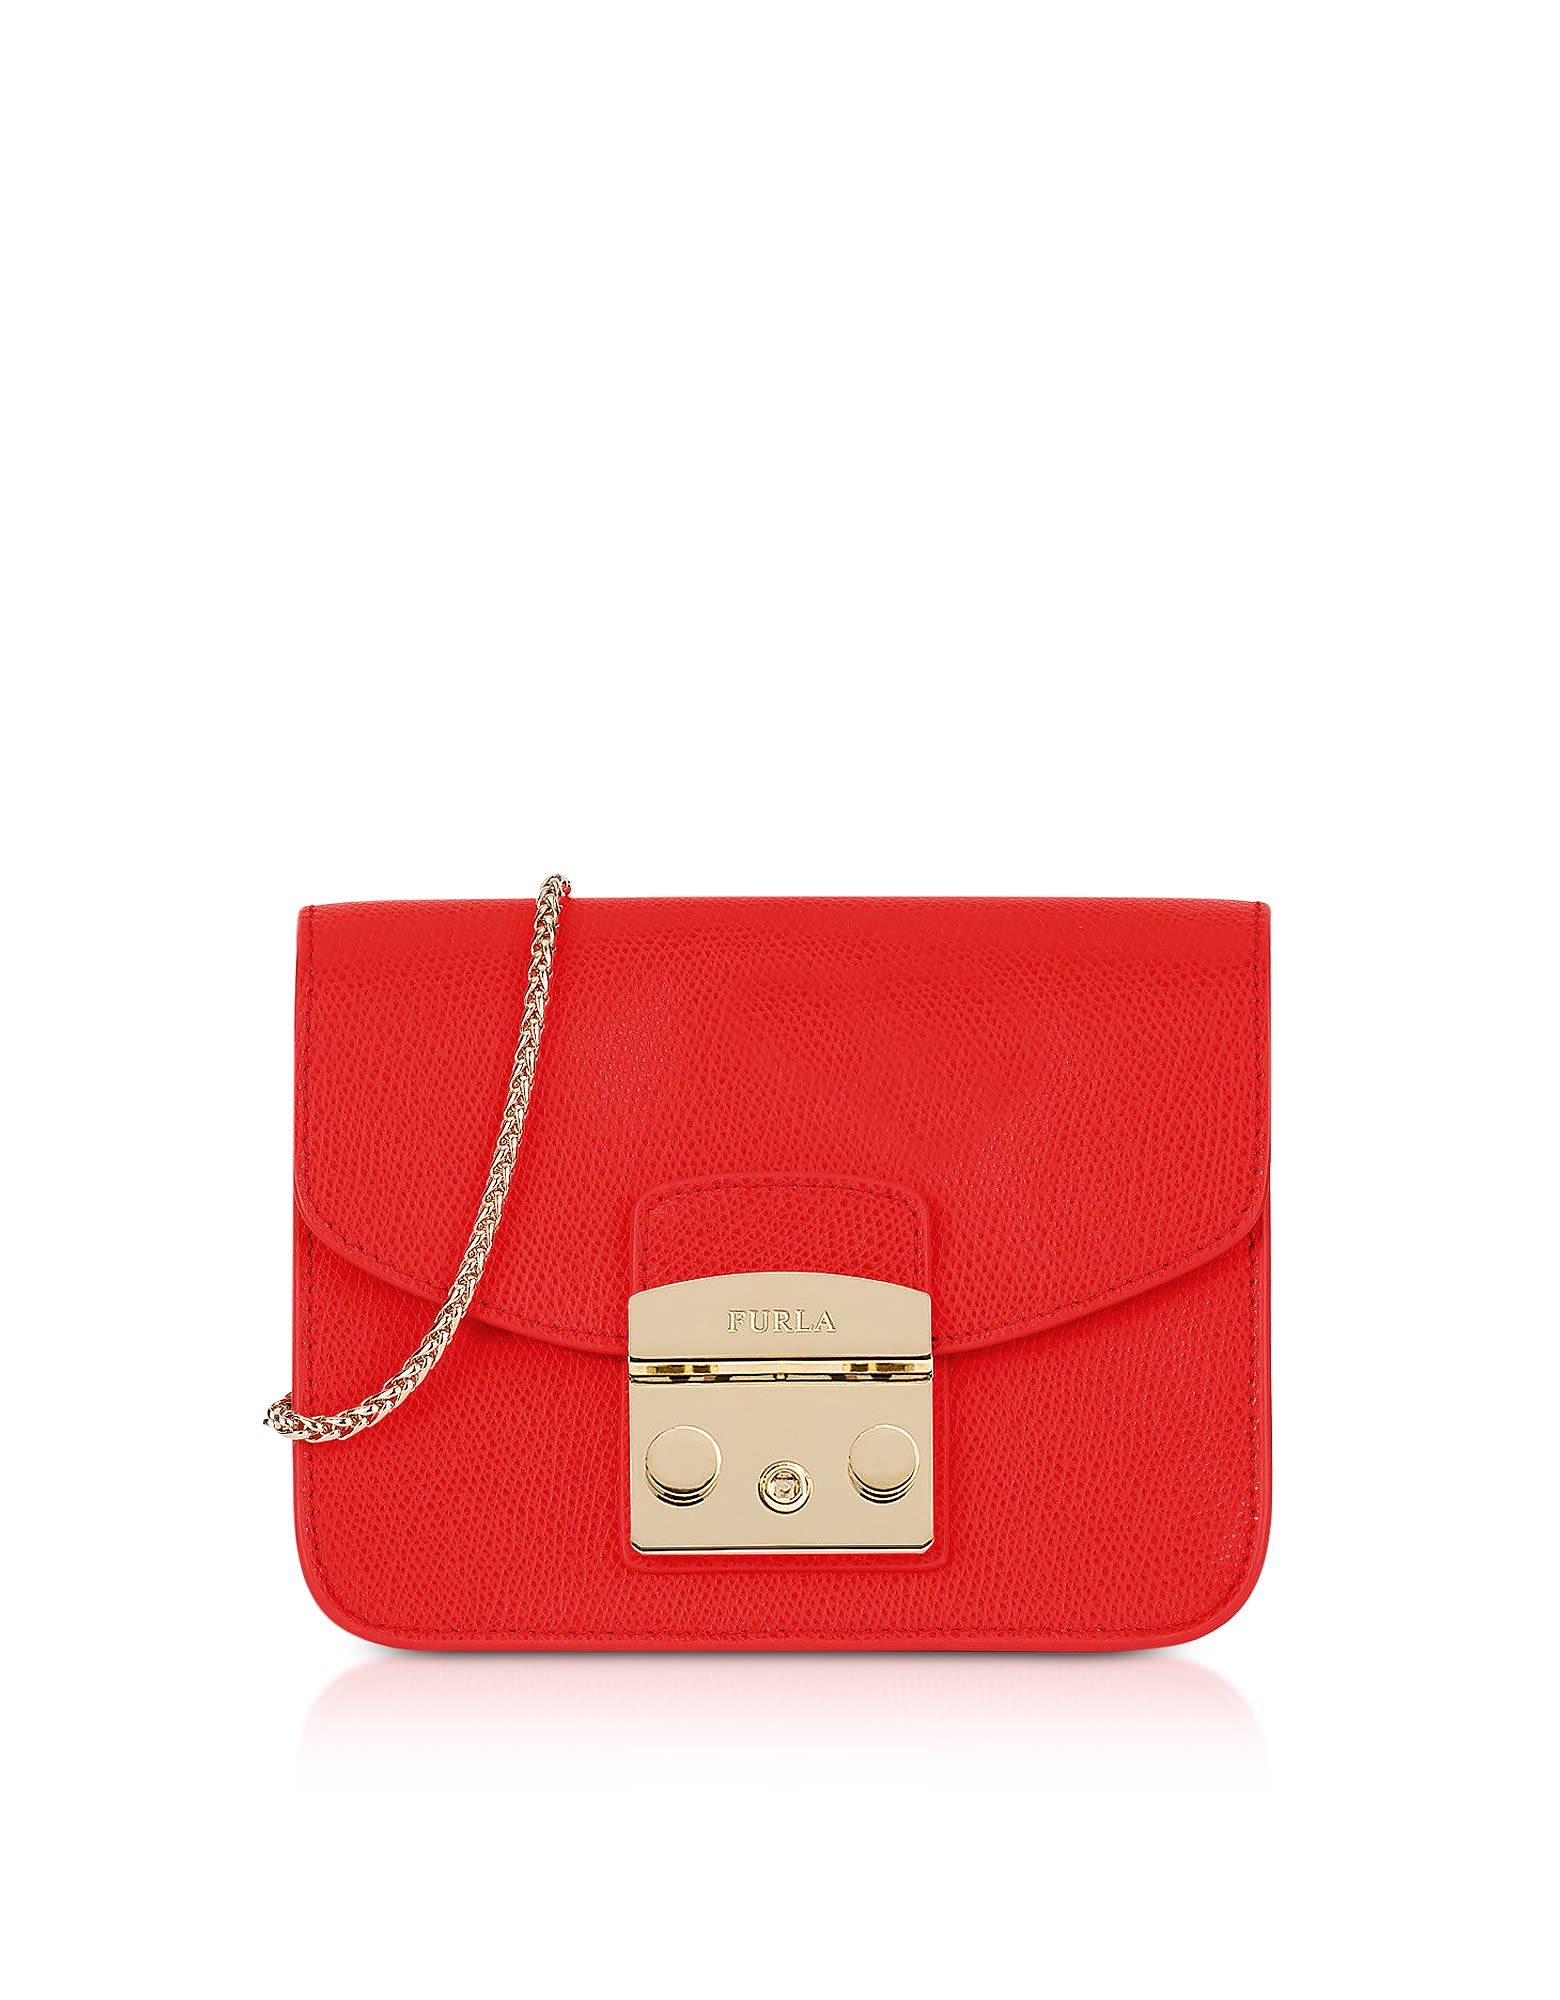 785138f6c39d Furla Furla Metropolis Mini Crossbody Bag W chain Strap - Red ...